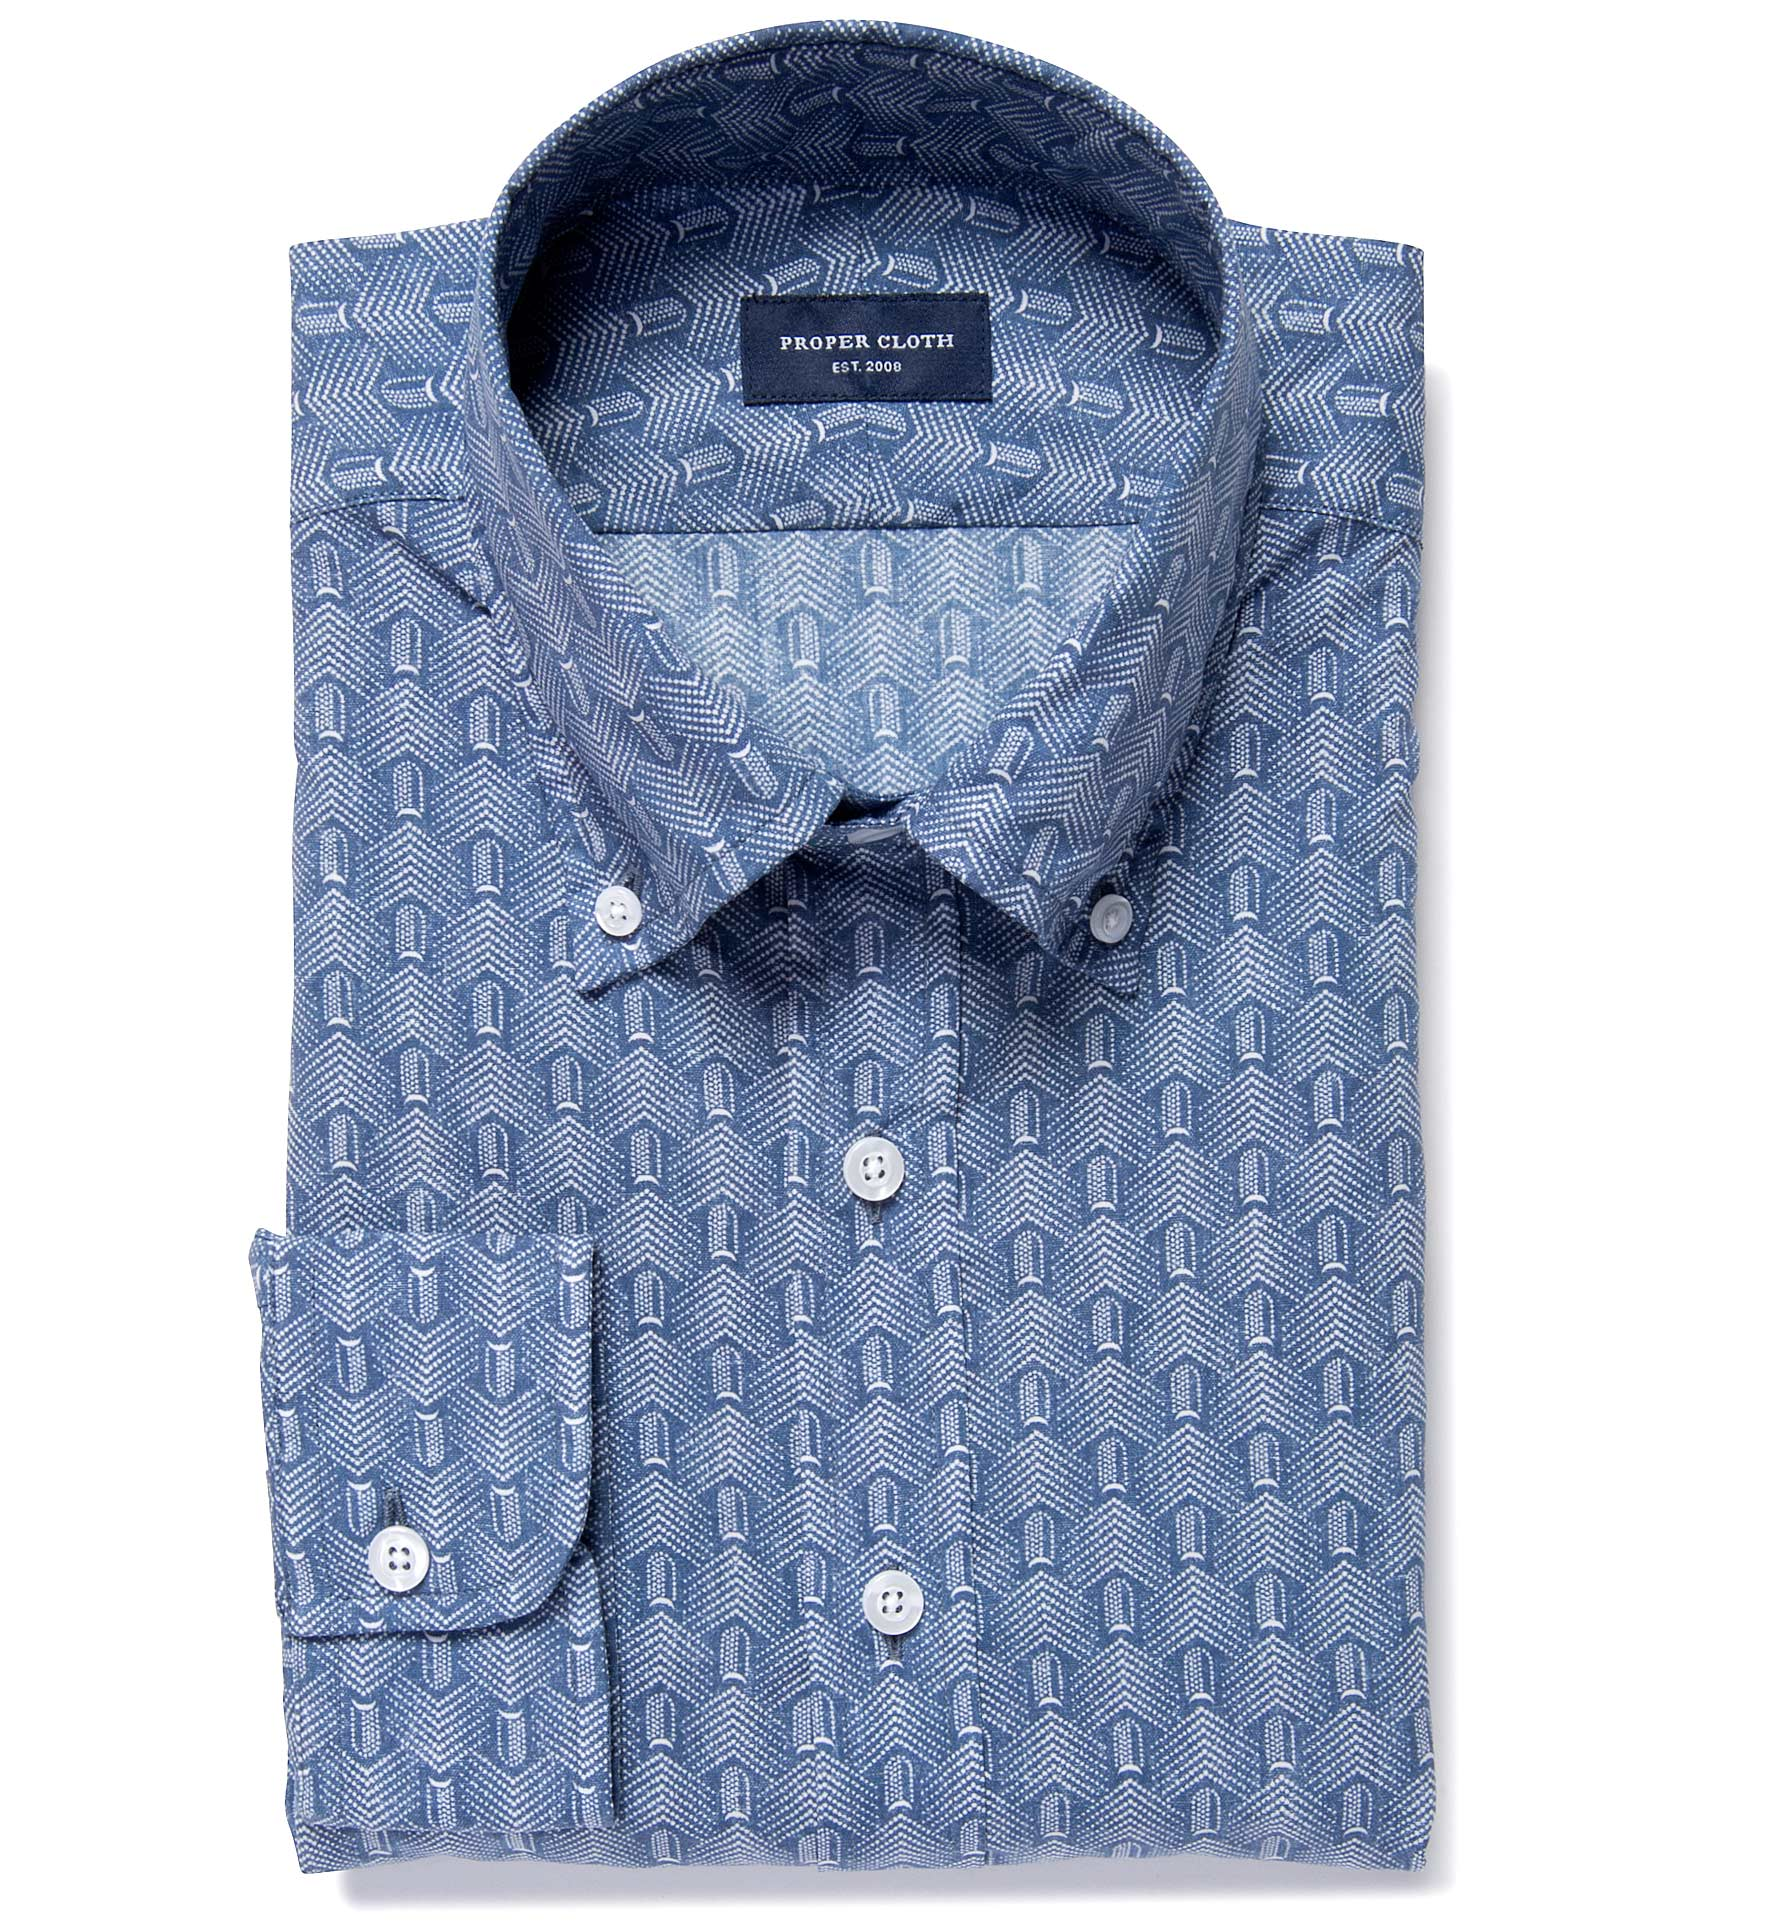 Katazome Faded Arrow Print Men's Dress Shirt by Proper Cloth